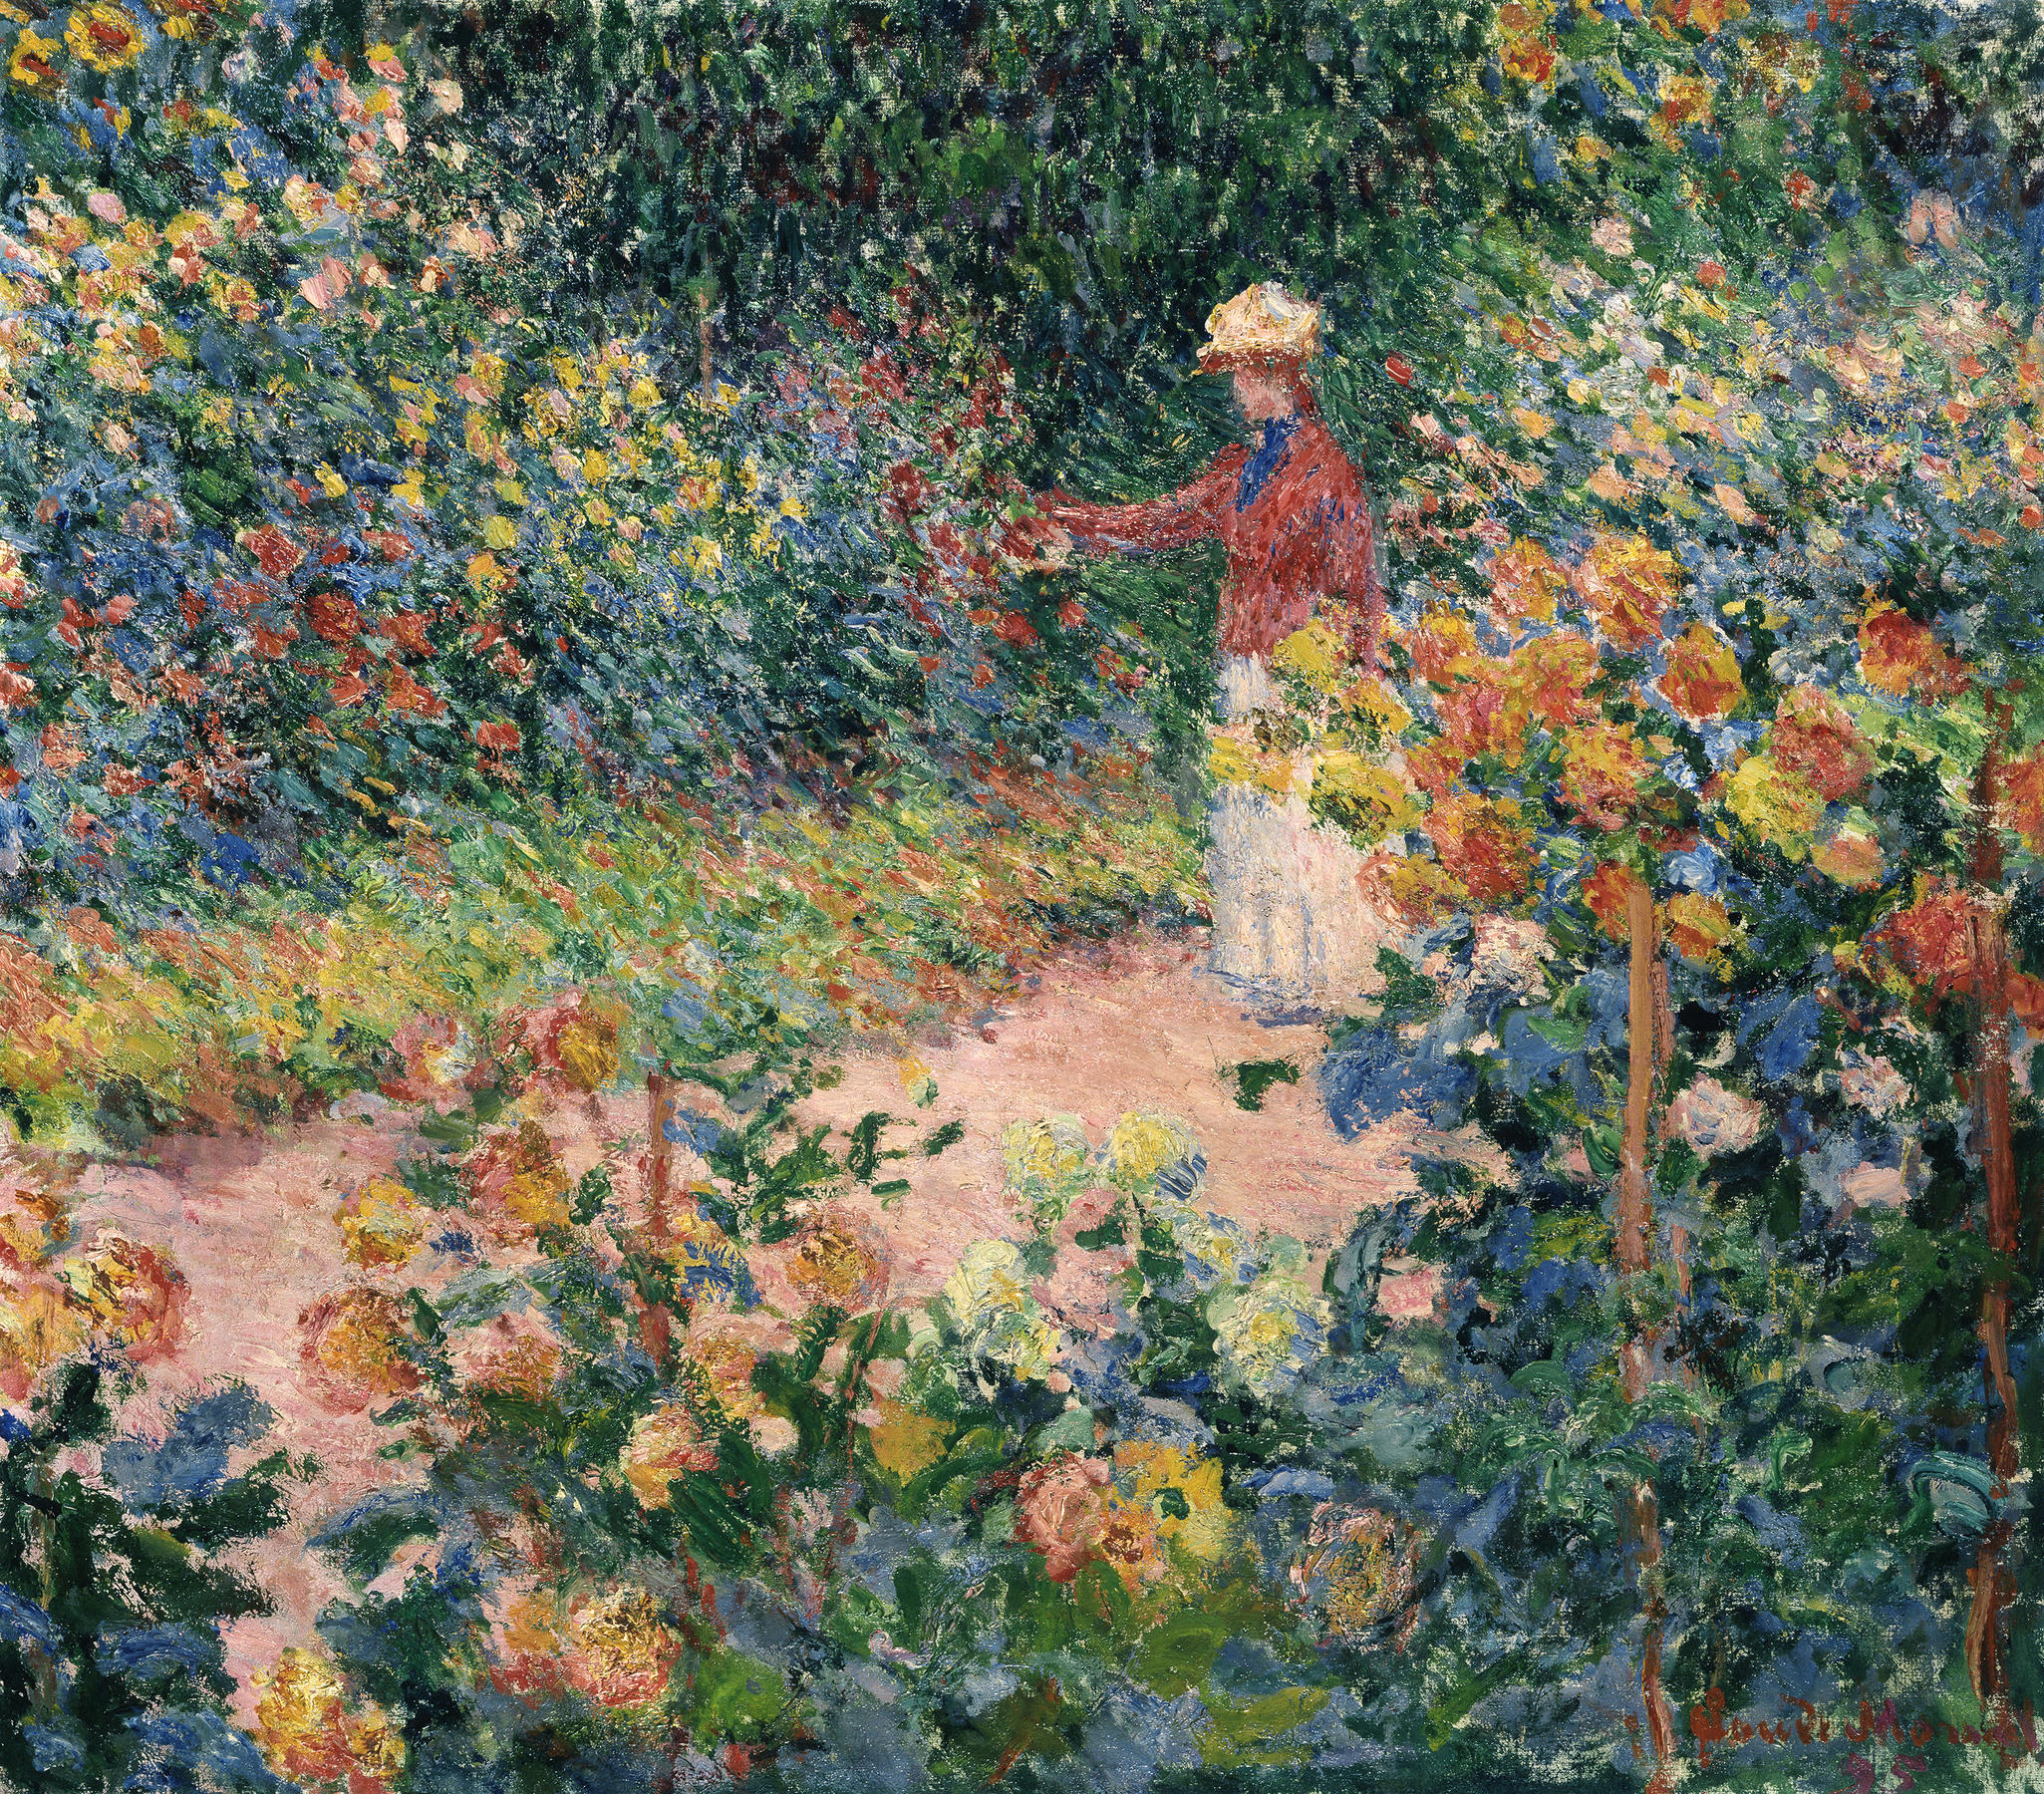 Monet S Garden At Giverny Claude Monet Stiftung Sammlung E G